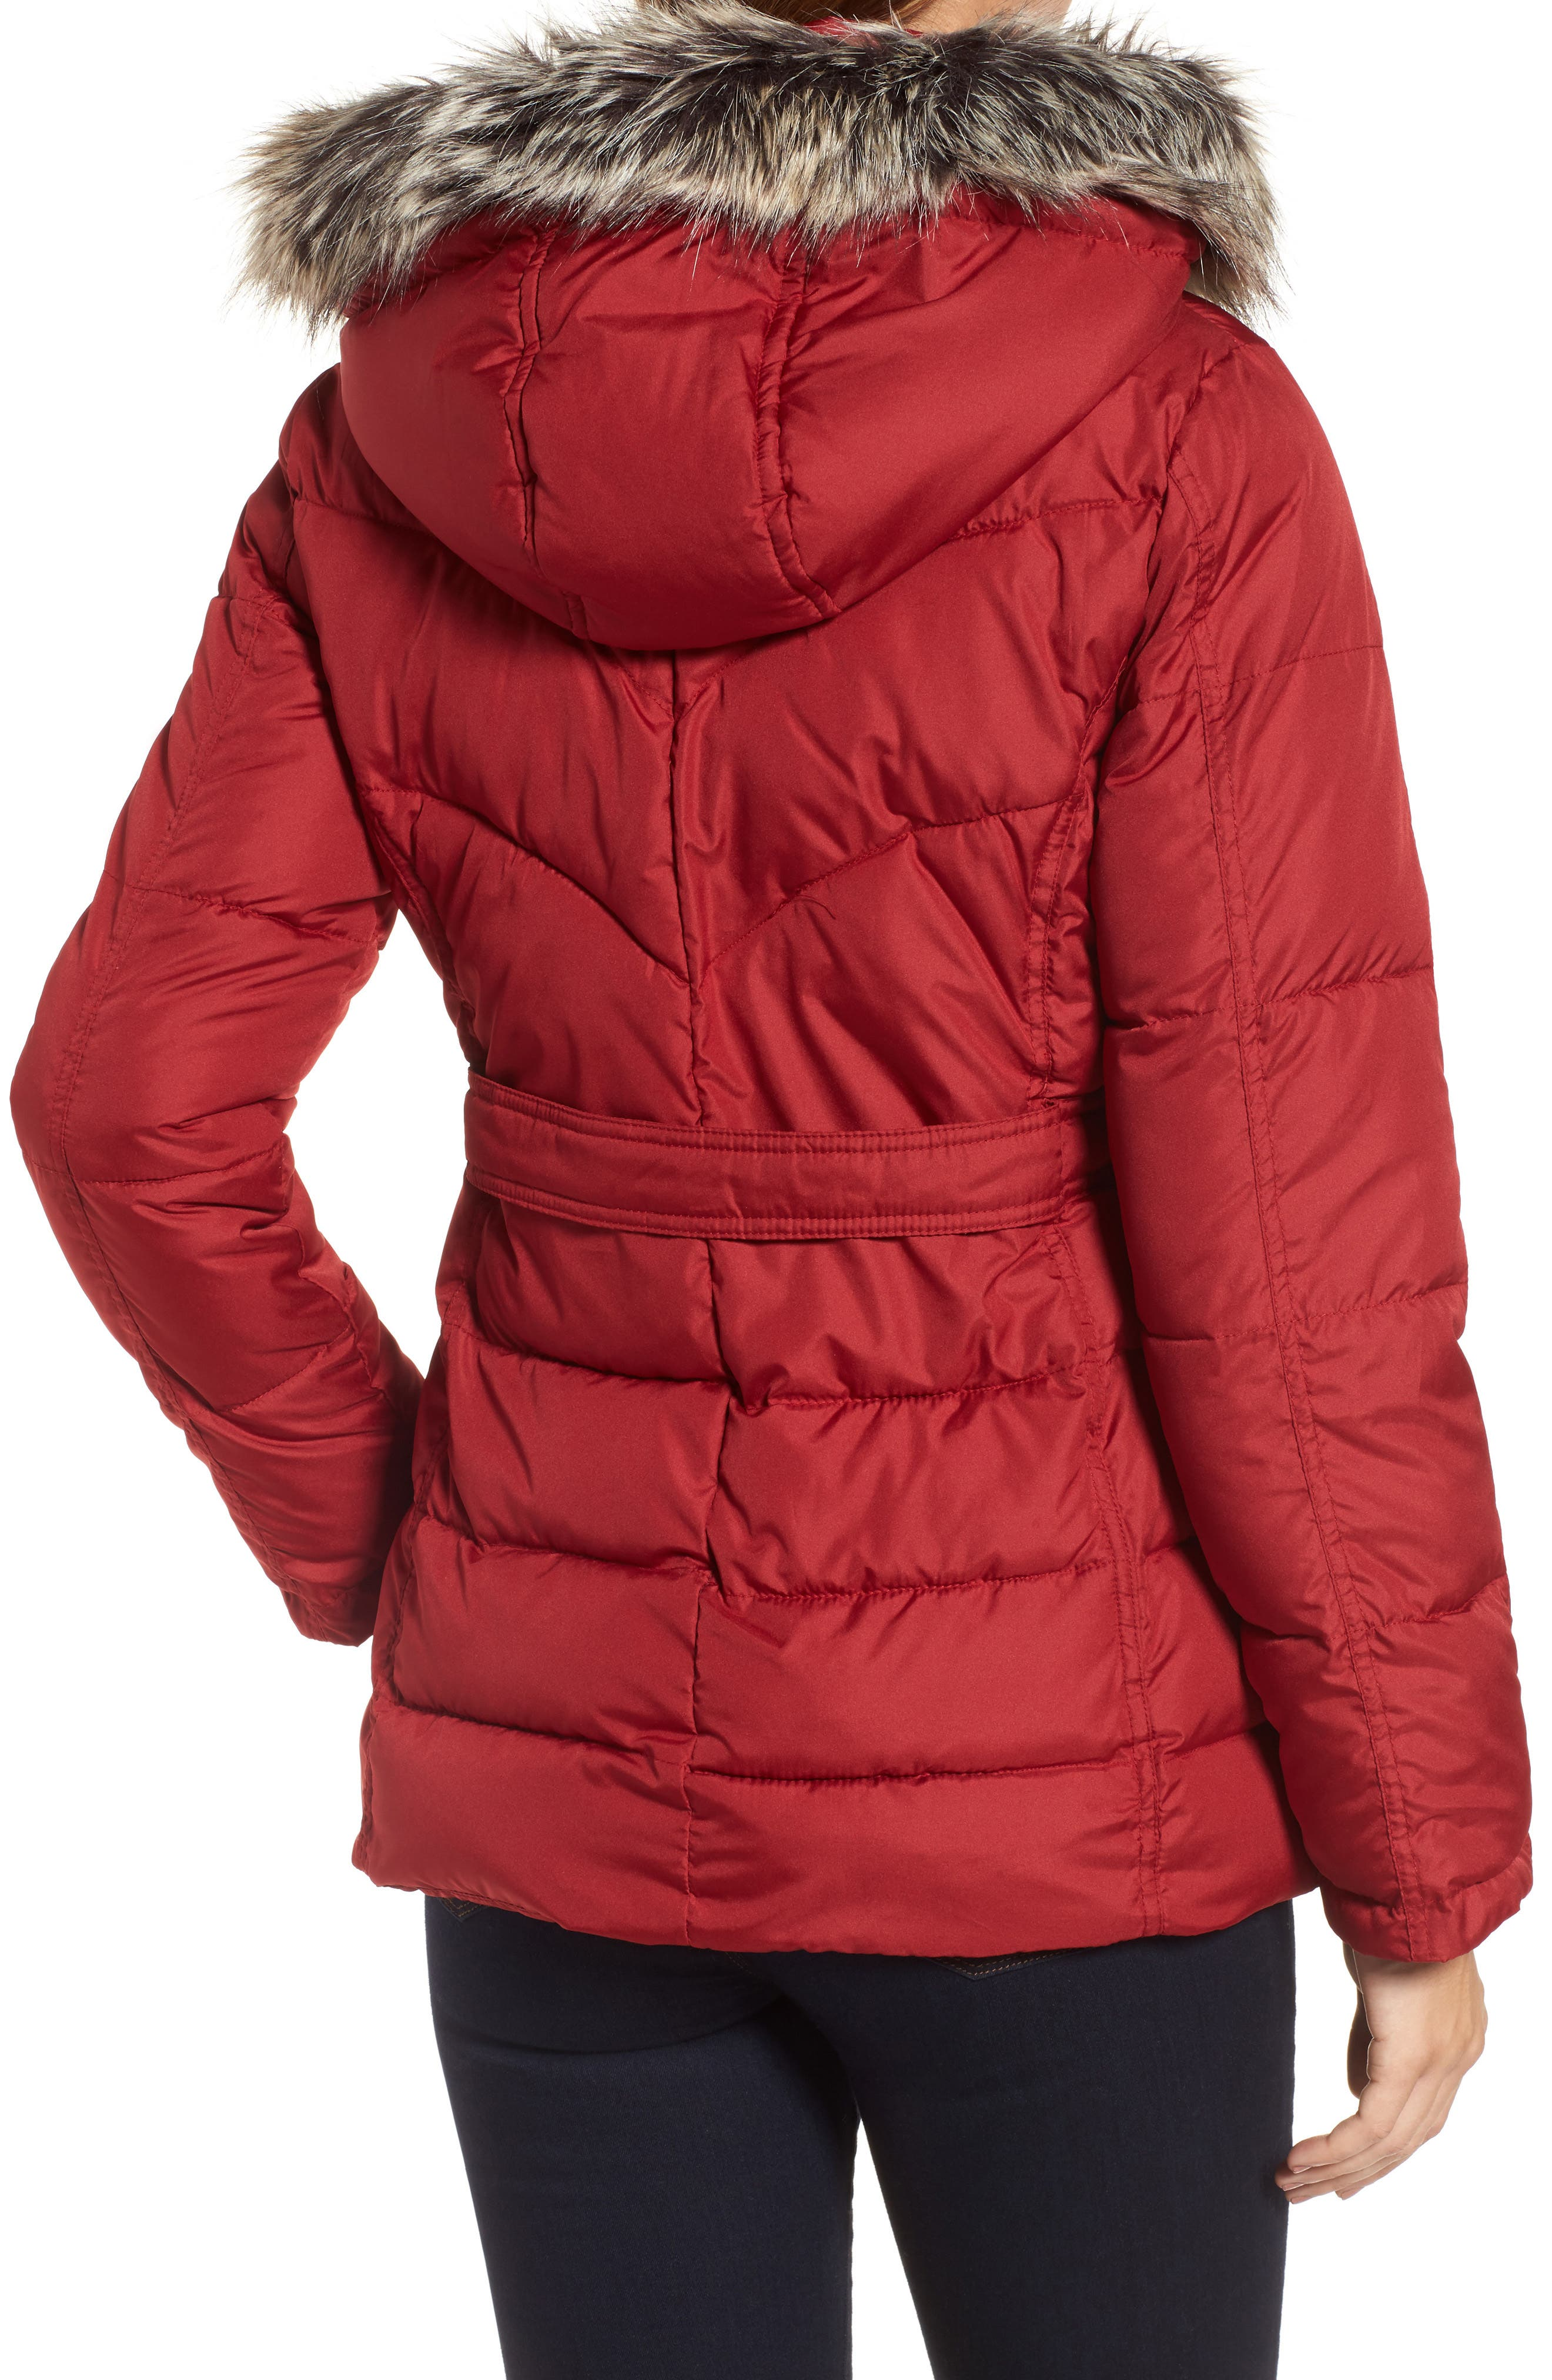 Quilted Coat with Faux Fur Trim,                             Alternate thumbnail 2, color,                             Brick